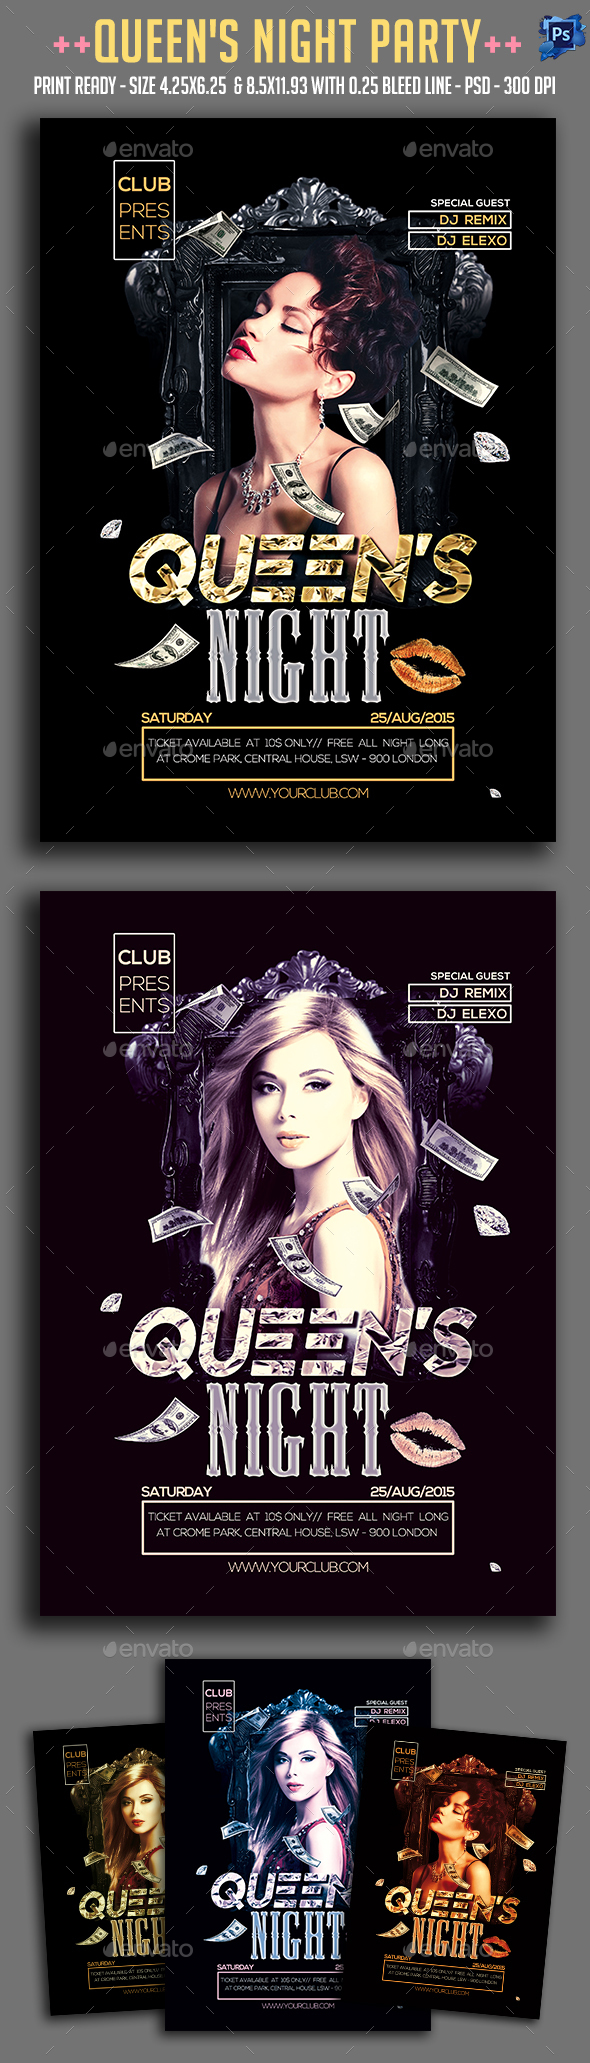 Queen's Night Party Flyer - Clubs & Parties Events